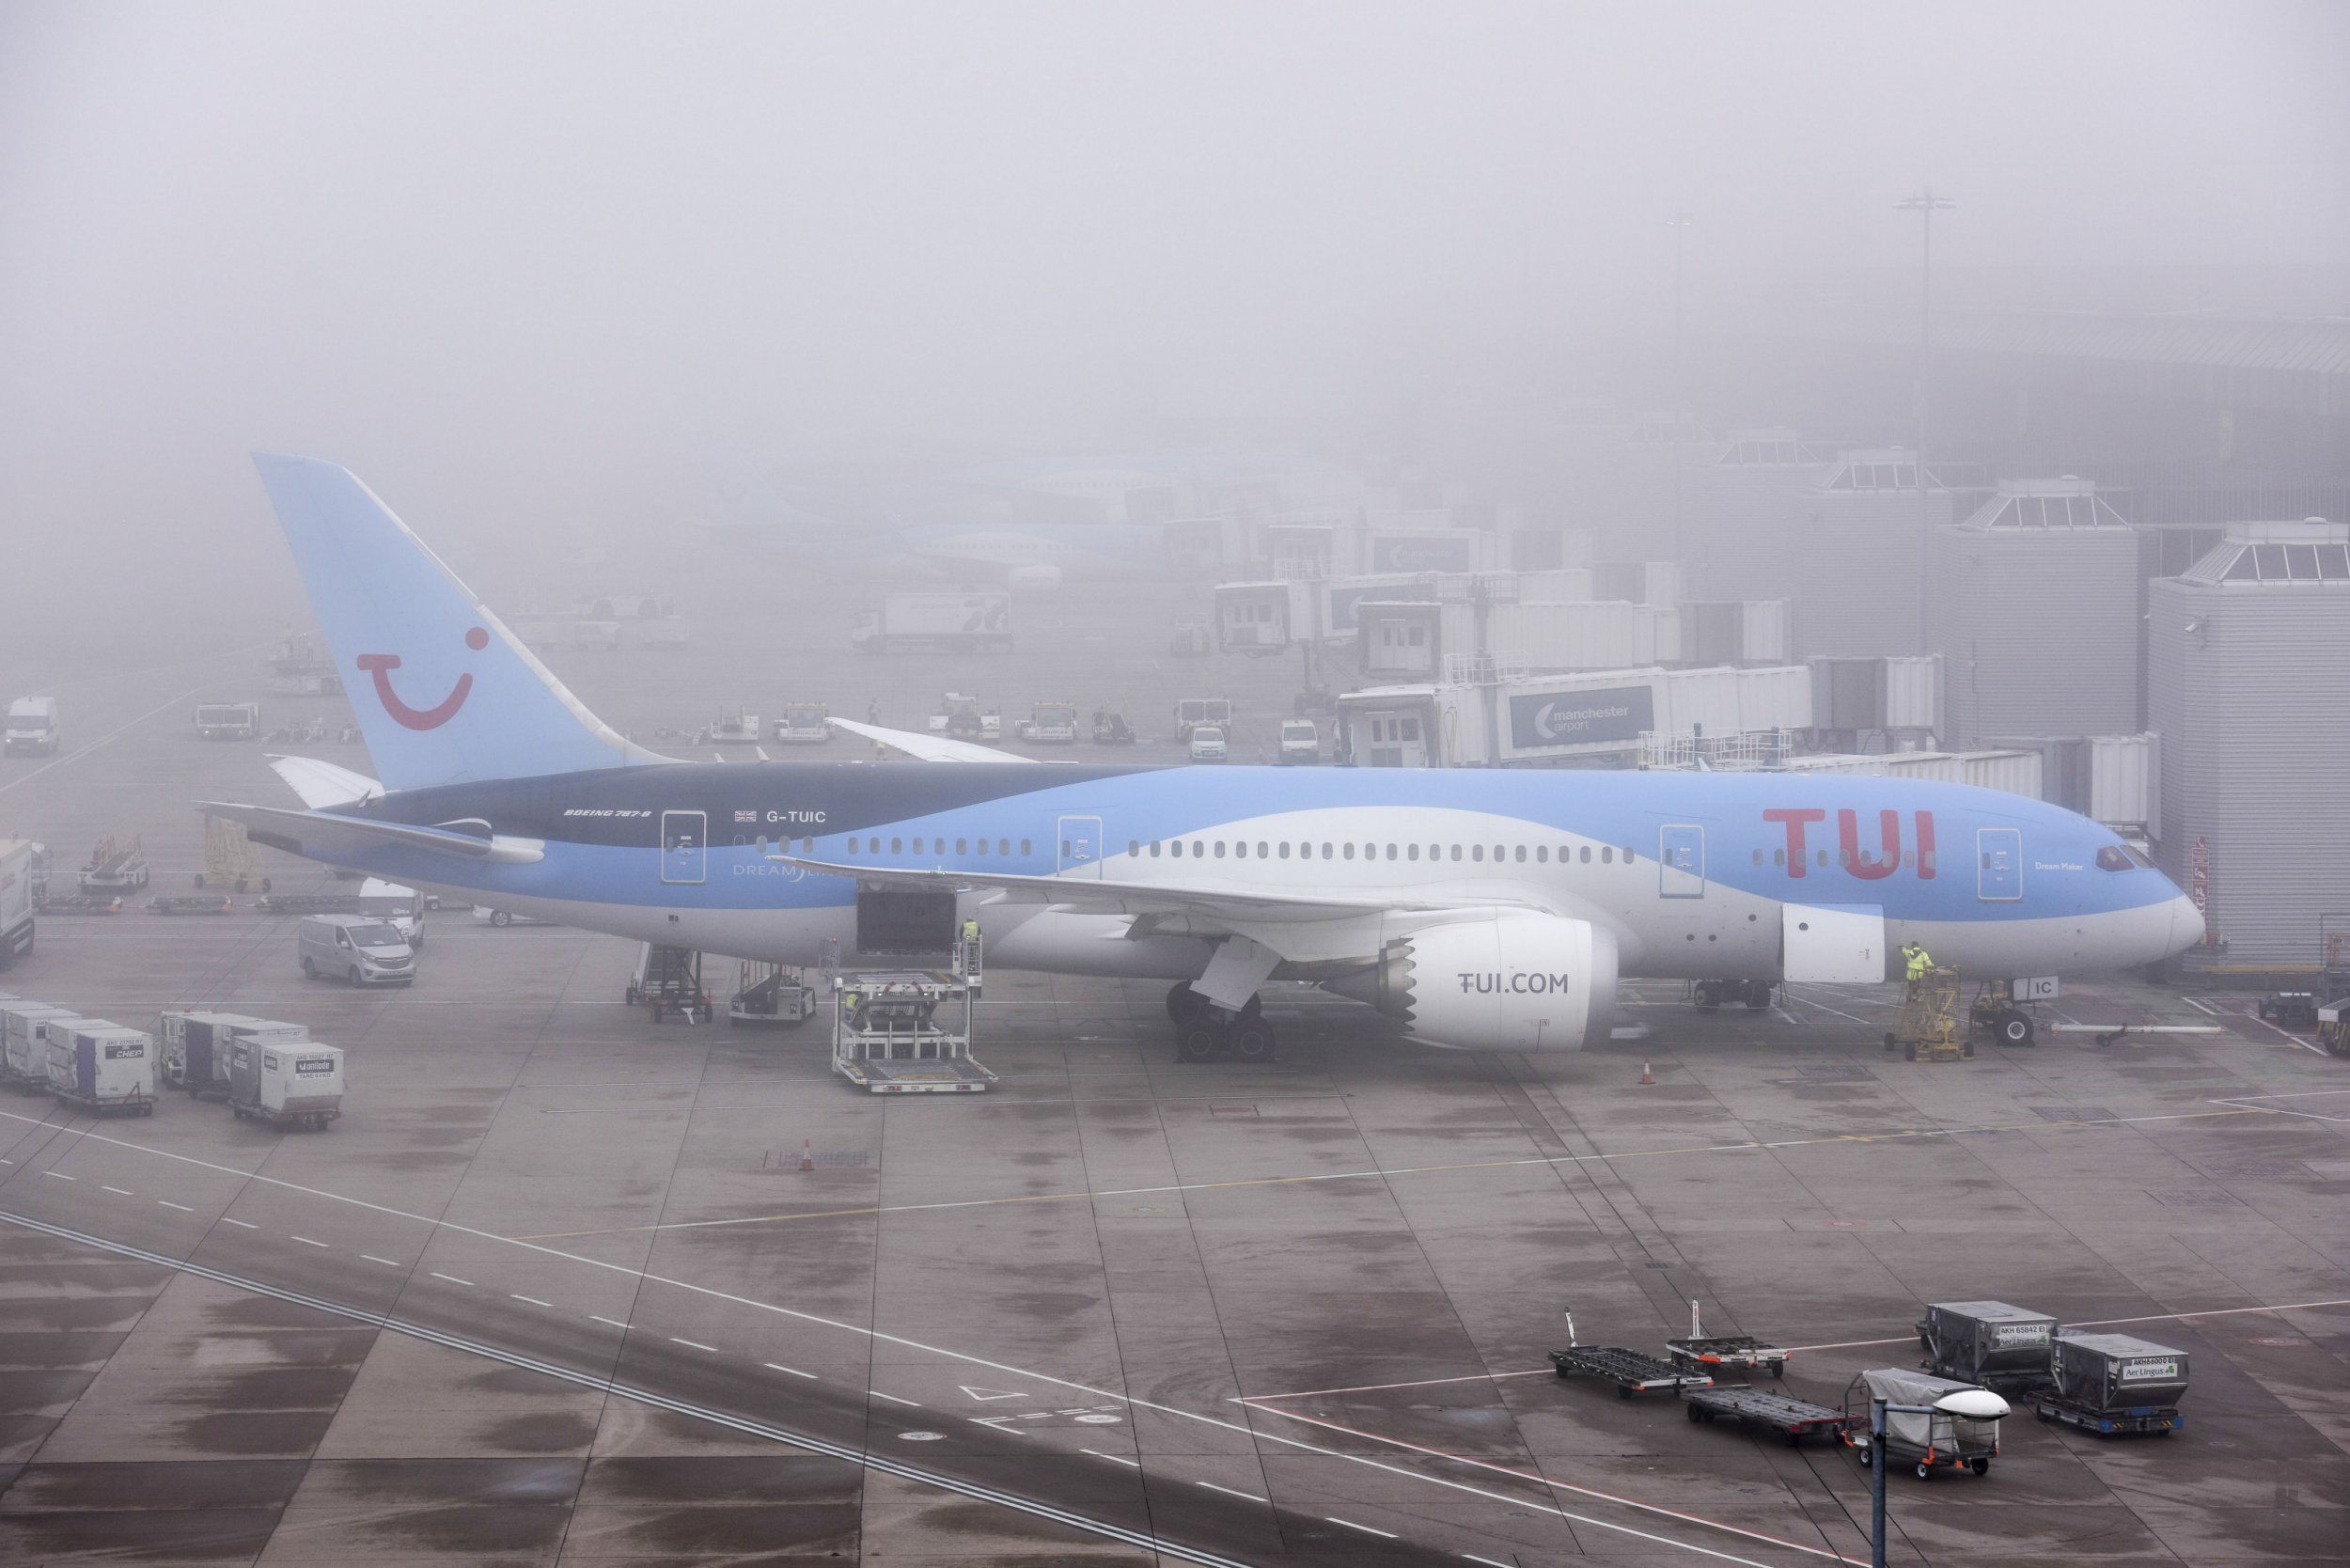 Flights cancelled at Manchester Airport as thick fog closes runway